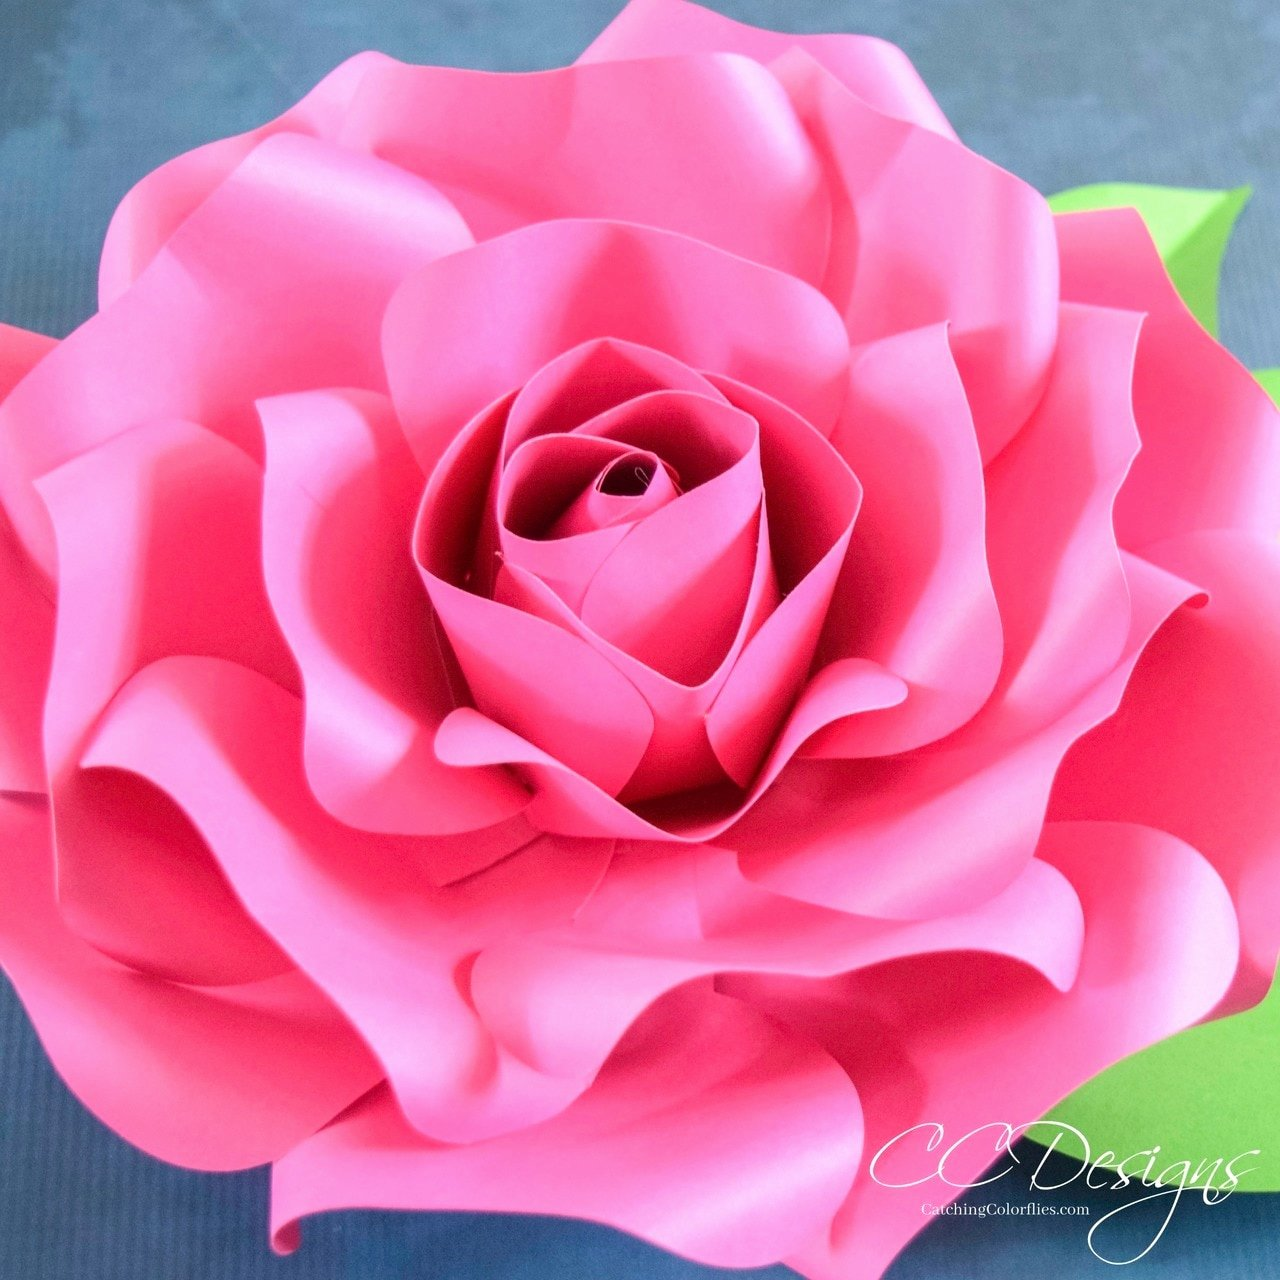 Paper Rose Template Printable Elegant Alora Garden Giant Paper Rose Template & Tutorial